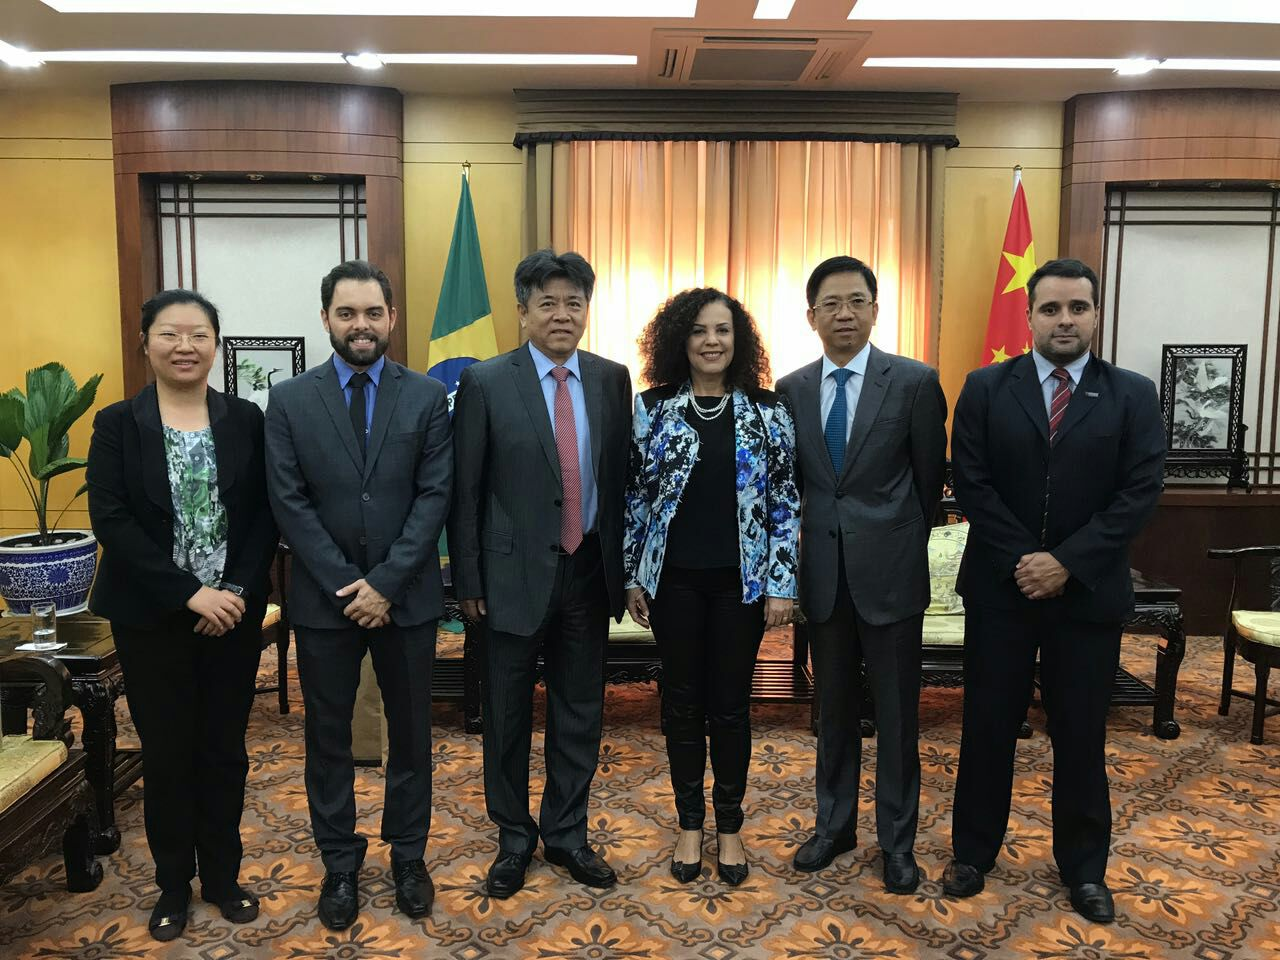 Representantes do Iphan e de estatal chinesa discutem desafios do licenciamento ambiental na Embaixada da China